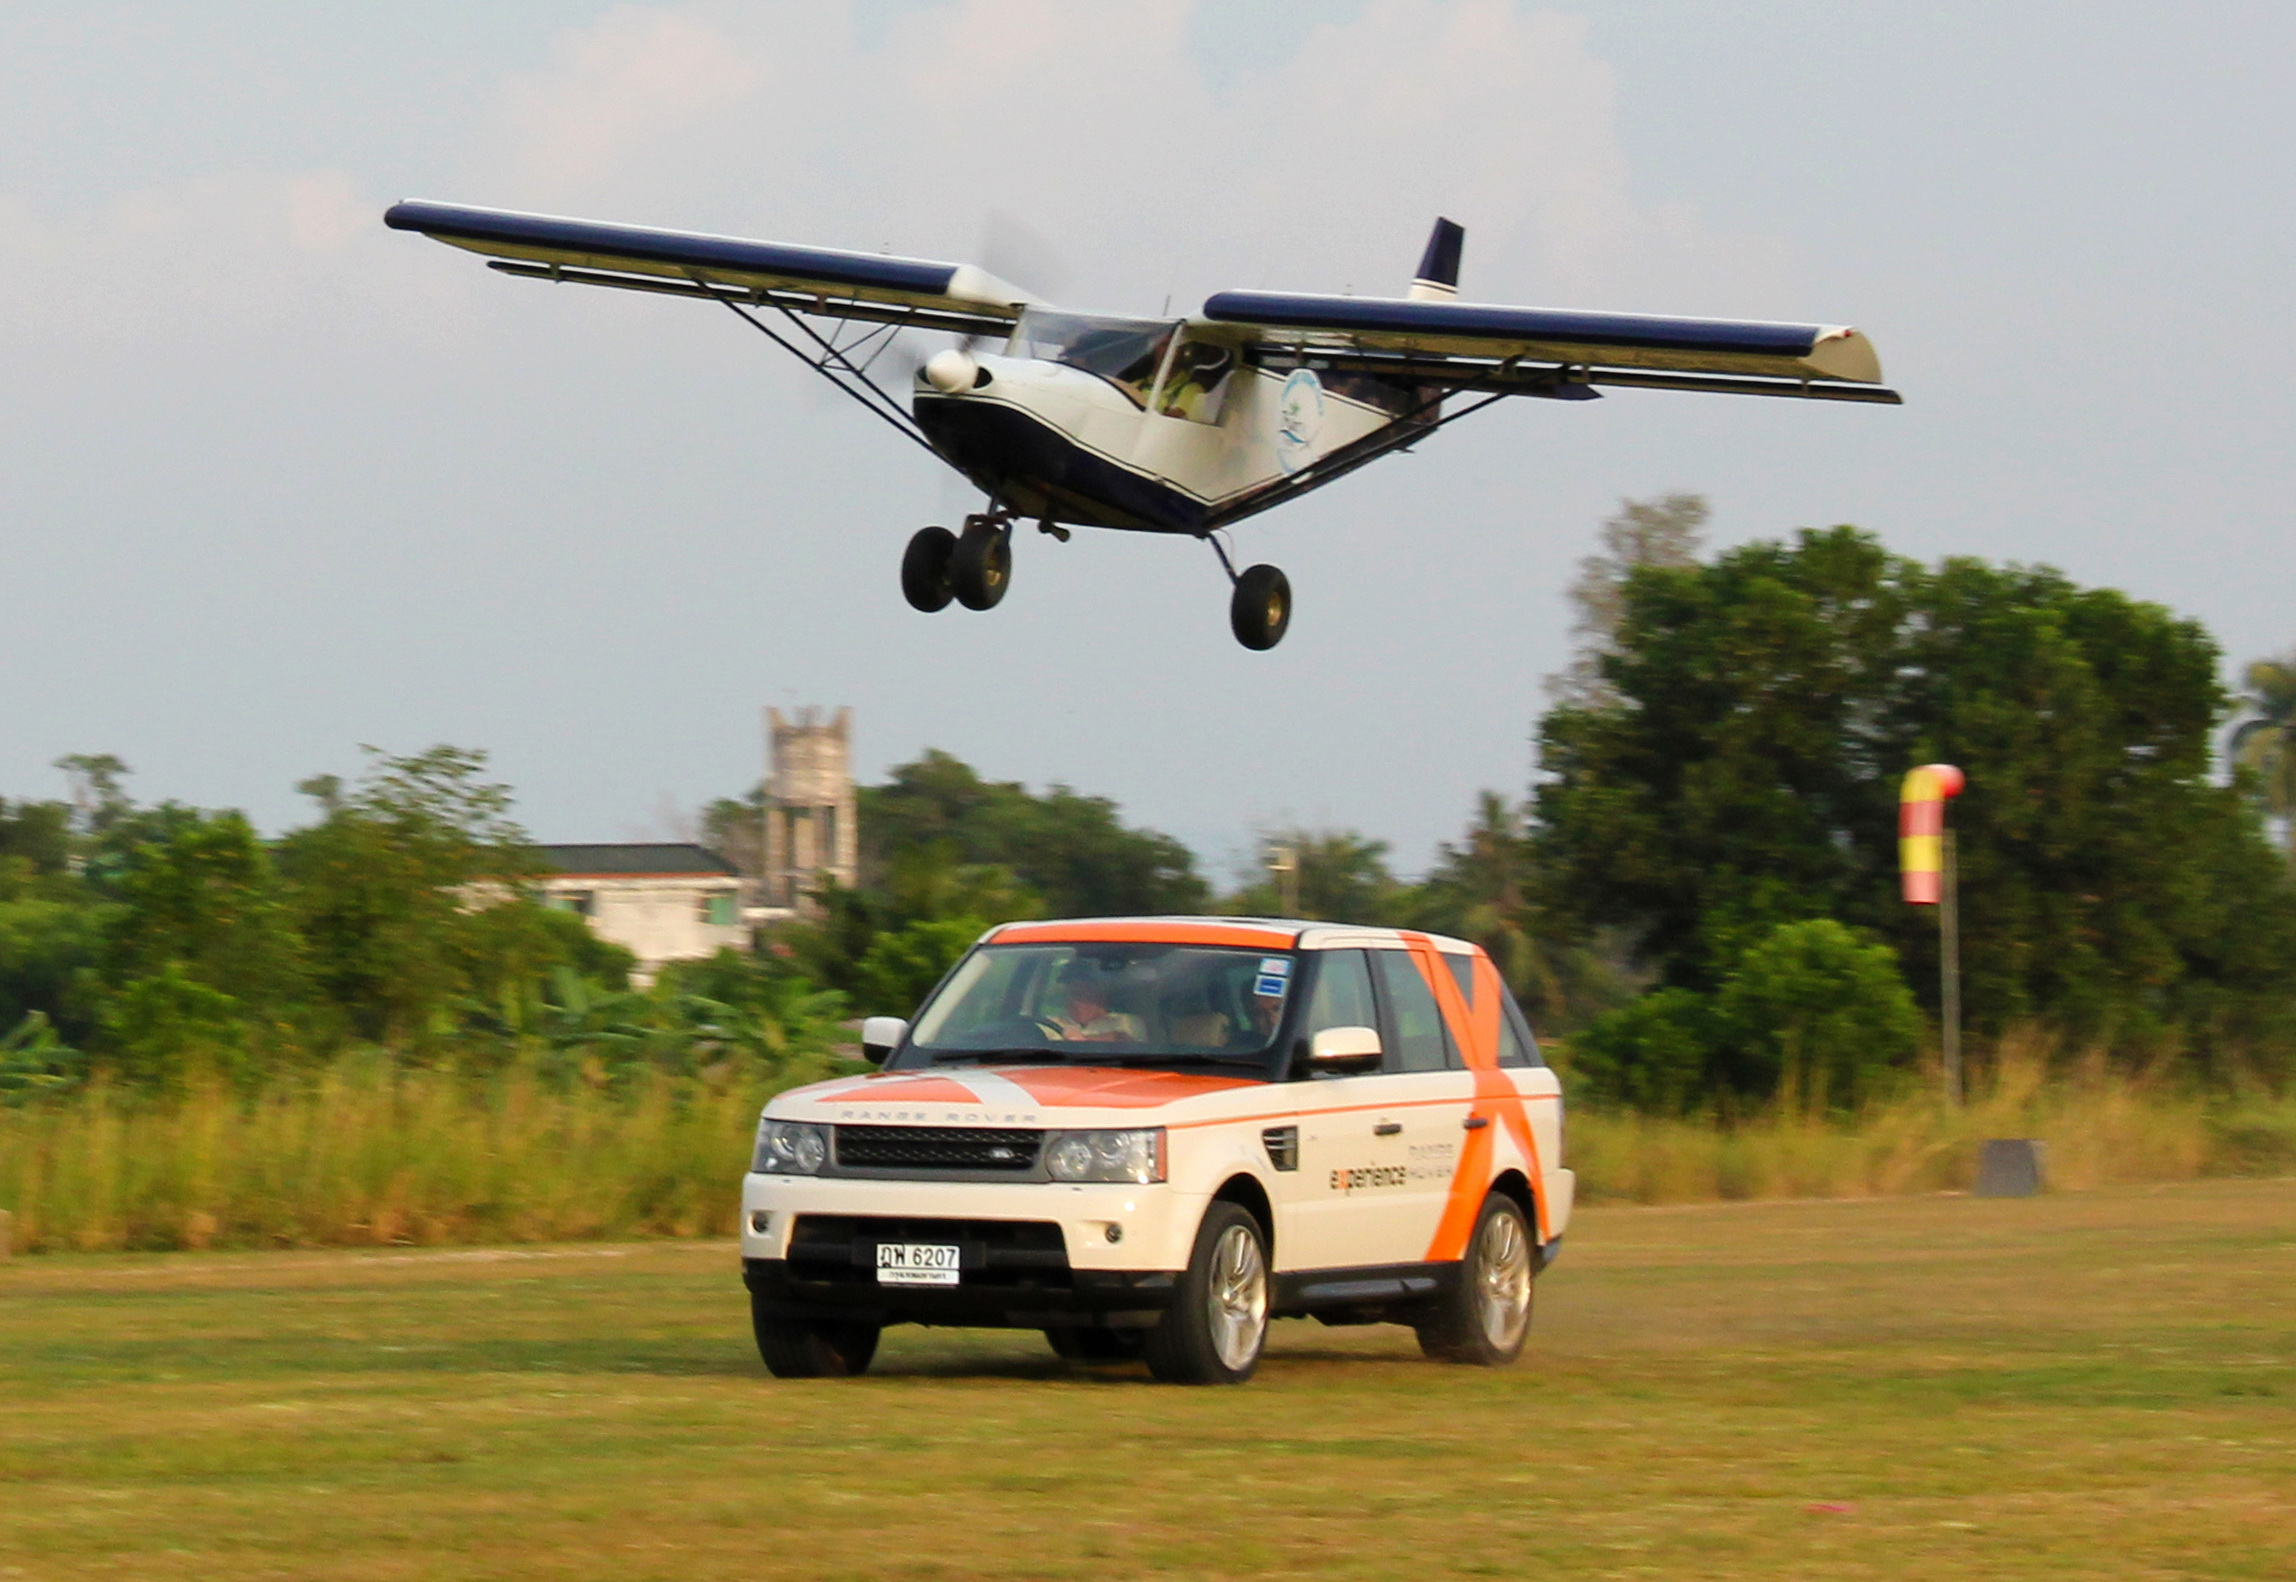 Zenair vs Land Rover Air Race 2011